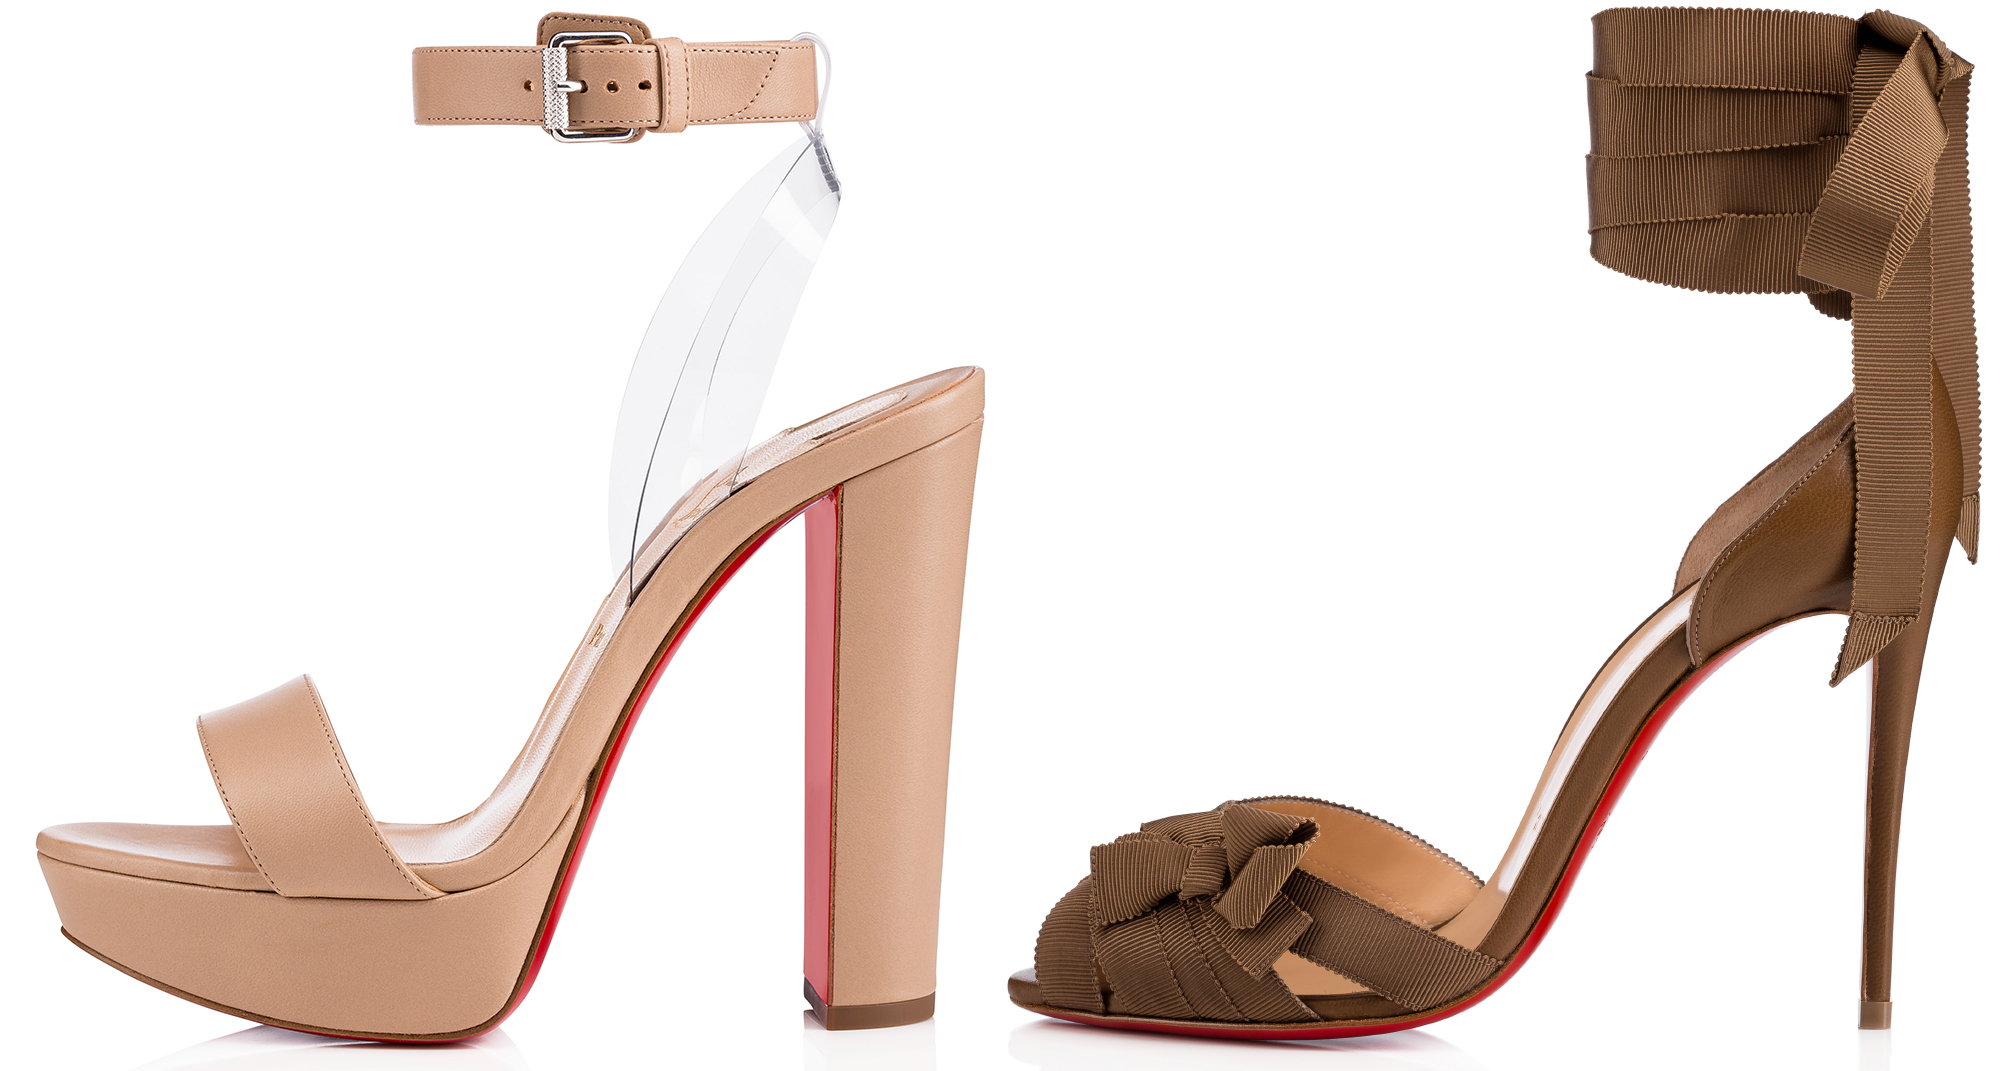 check out f8f69 e2ea0 Christian Louboutin Is Adding High Heel Sandals to His Nudes ...